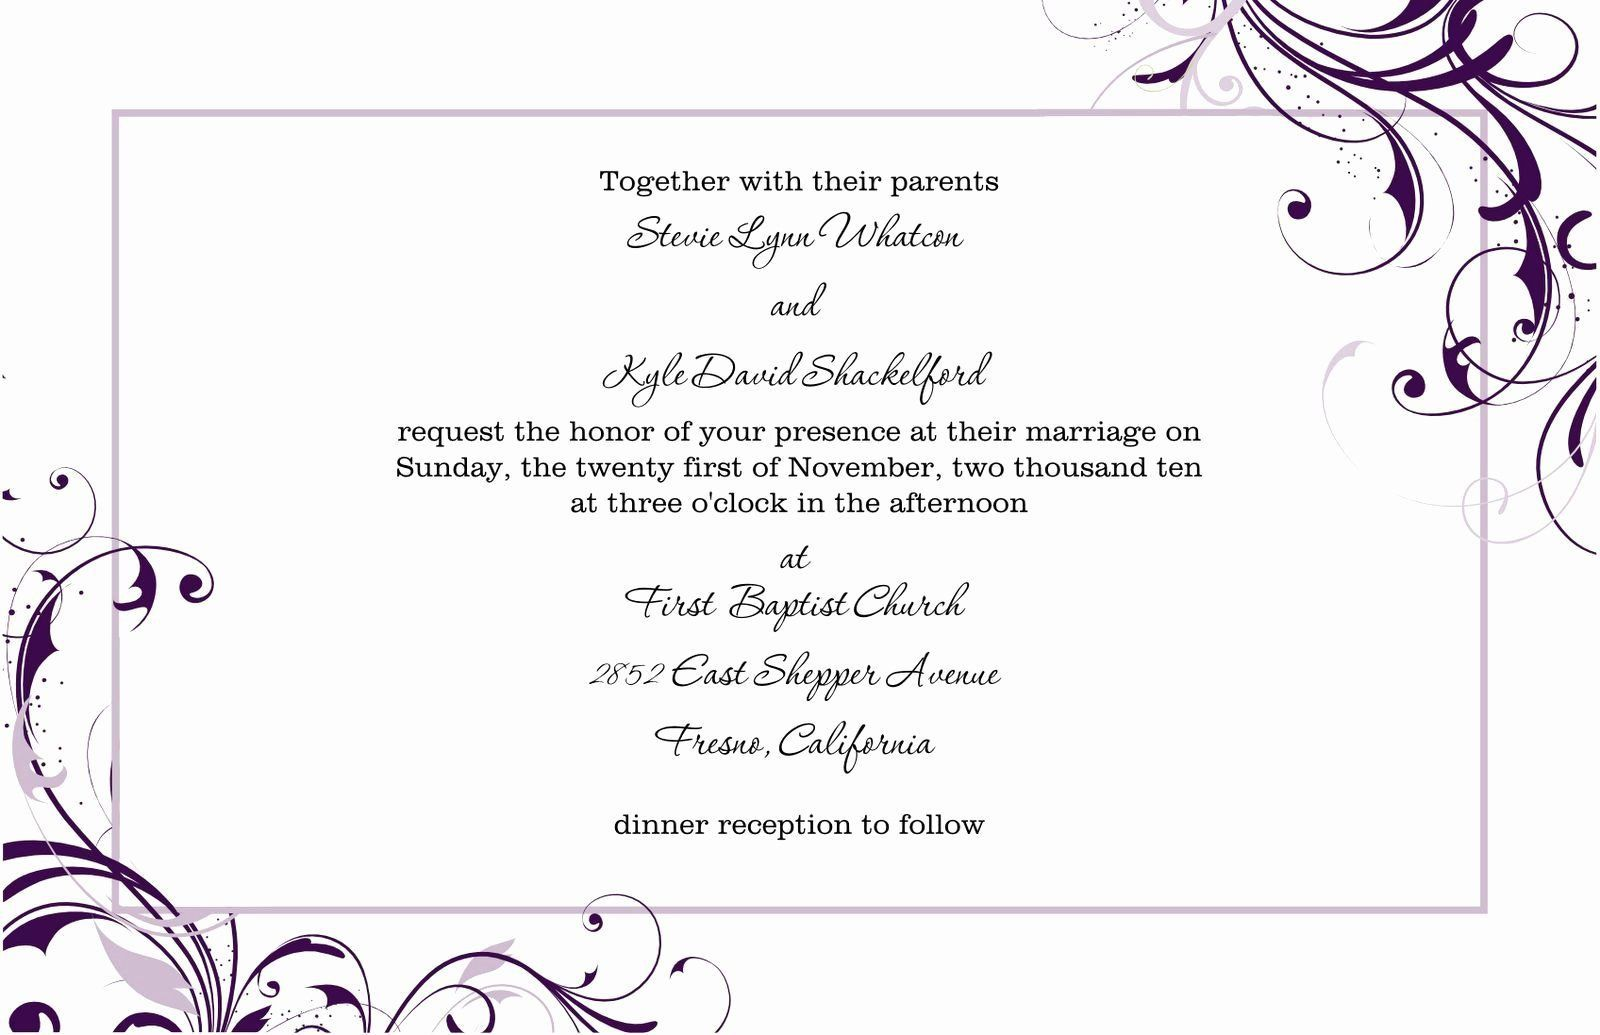 000 Best Free Wedding Invitation Template For Word 2019 Concept Full